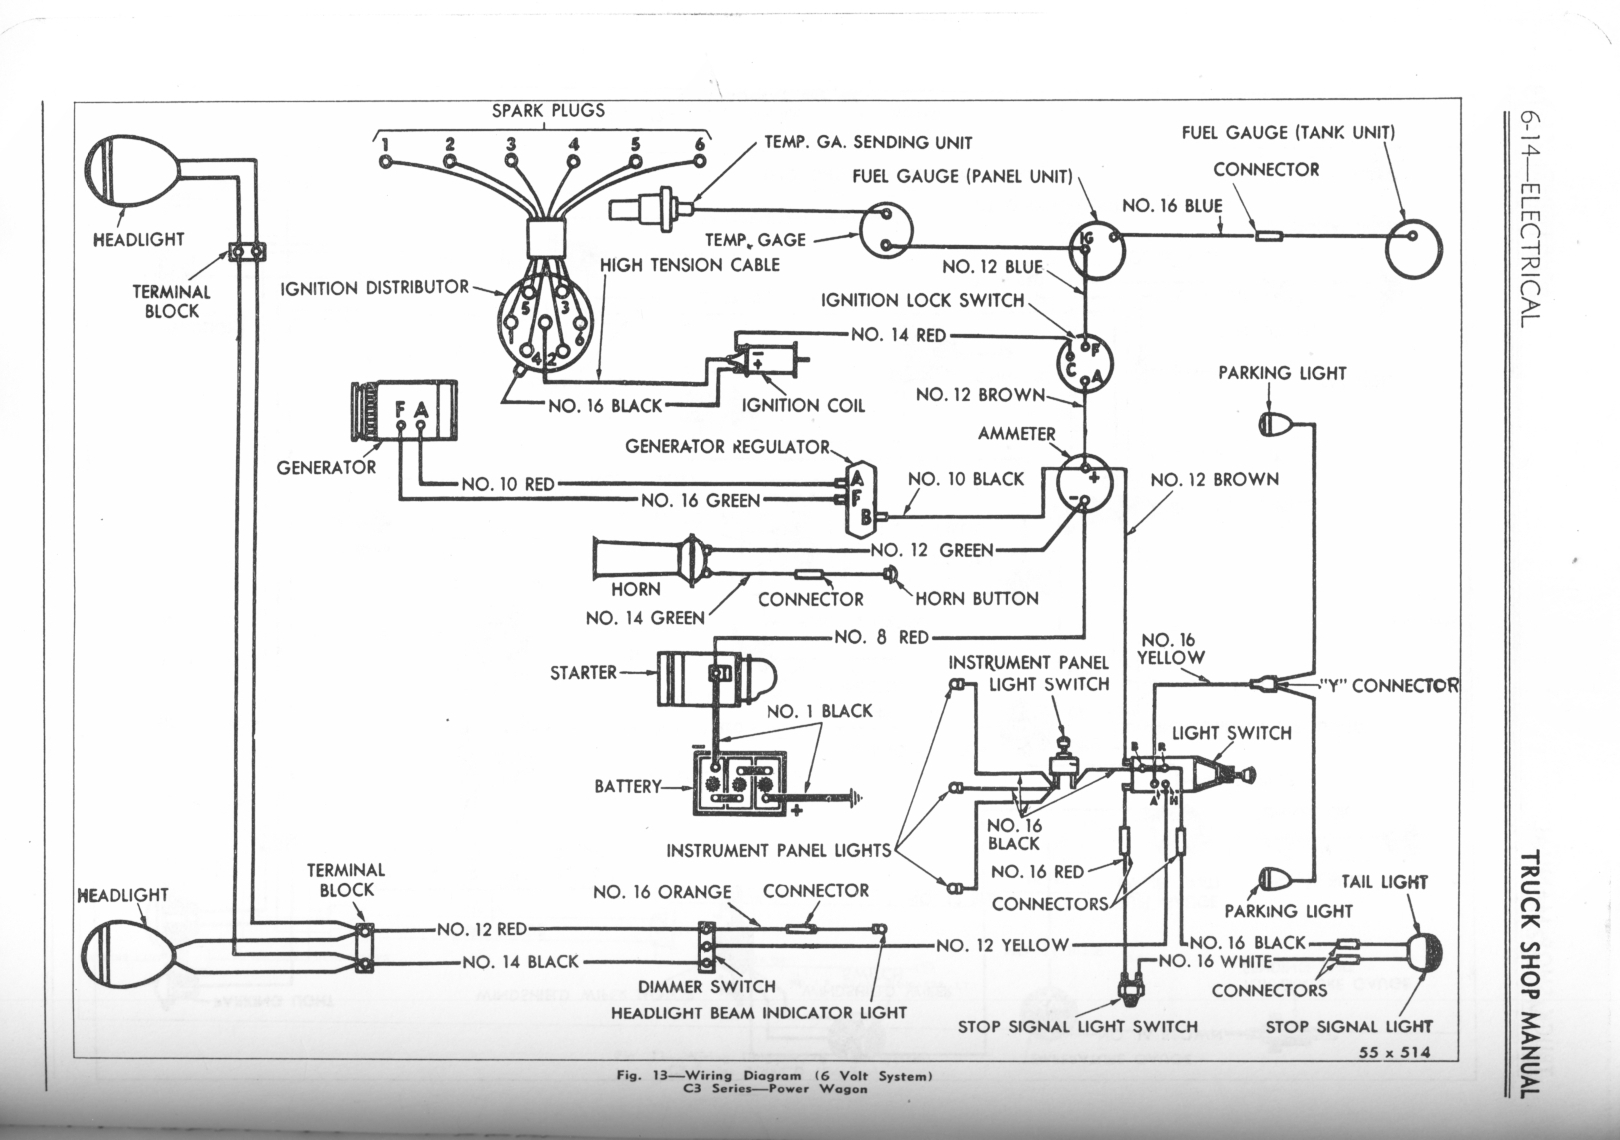 2004 Mack Cx613 Wiring Diagrams | Images of Wiring Diagrams Mack Cx Wiring Diagram on